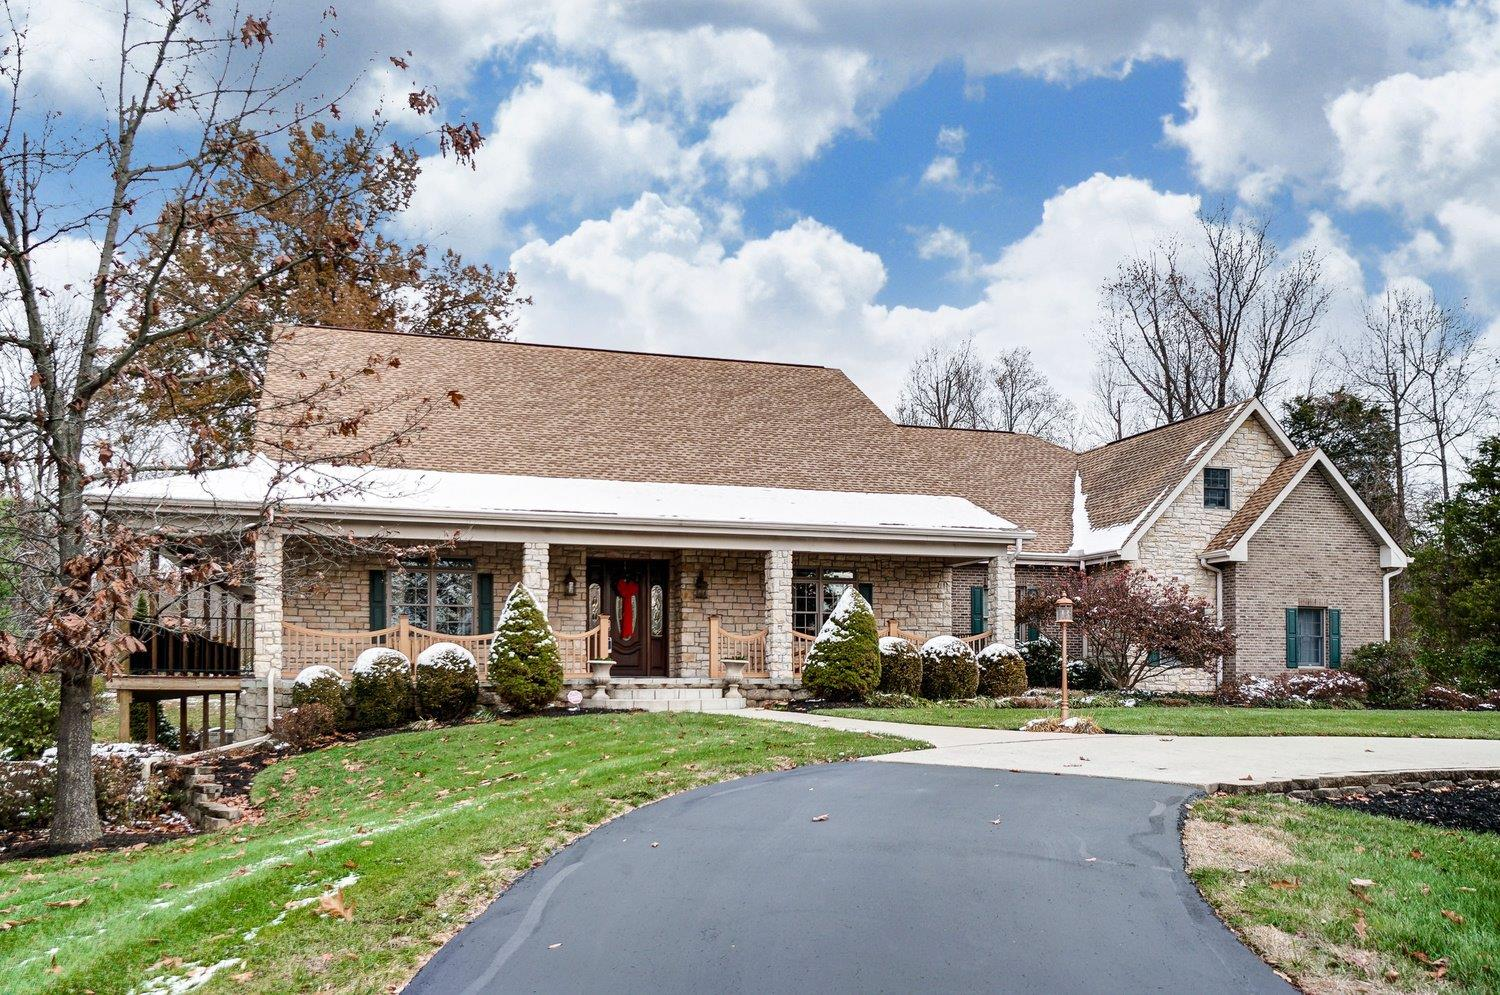 421 Old Branch Hill Miamiville Rd Miami Twp. (East), OH